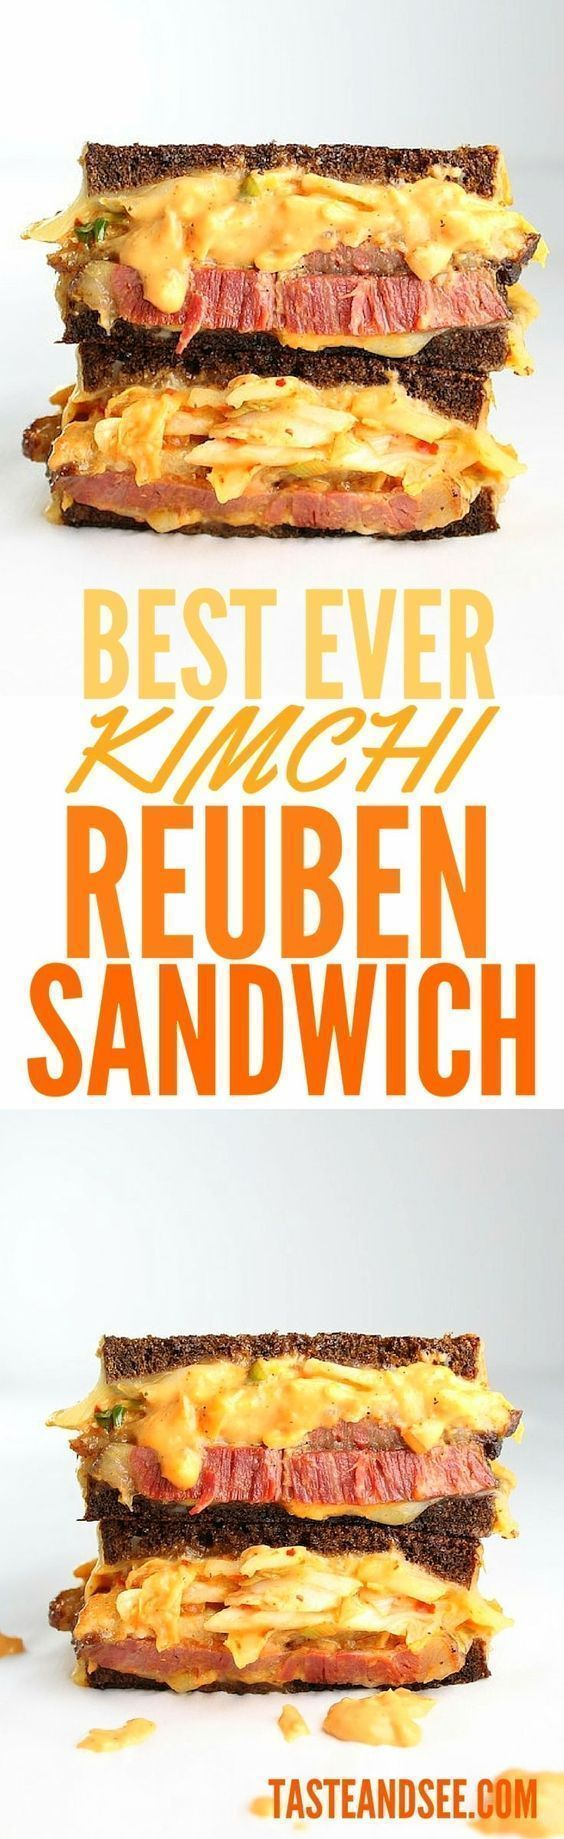 Kimchi #Reuben Sandwich!  Salty tender corned beef & melted Swiss, with spicy,crispy kimchi plus sweet, creamy, zesty Russian dressing…on toasted pumpernickel. Best. Sandwich. Ever.  http://tasteandsee.com